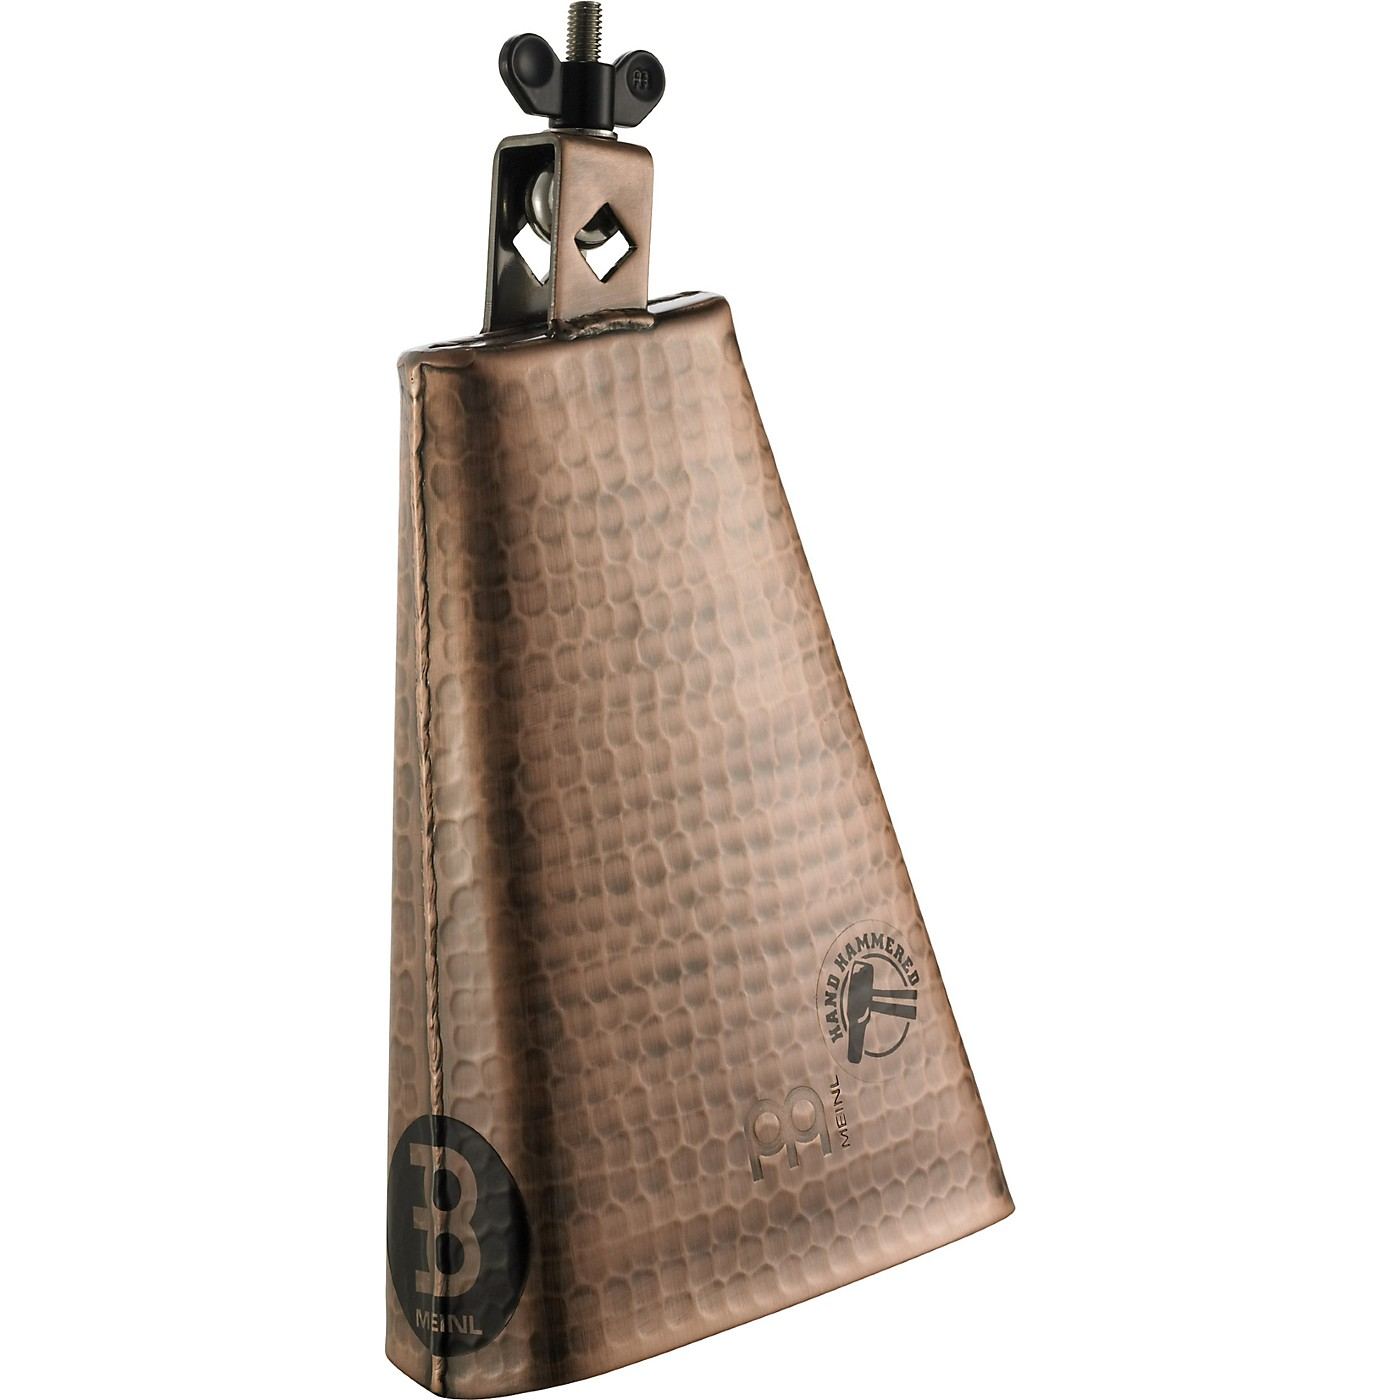 Meinl Realplayer Steelbell Hand Hammered Cowbell thumbnail